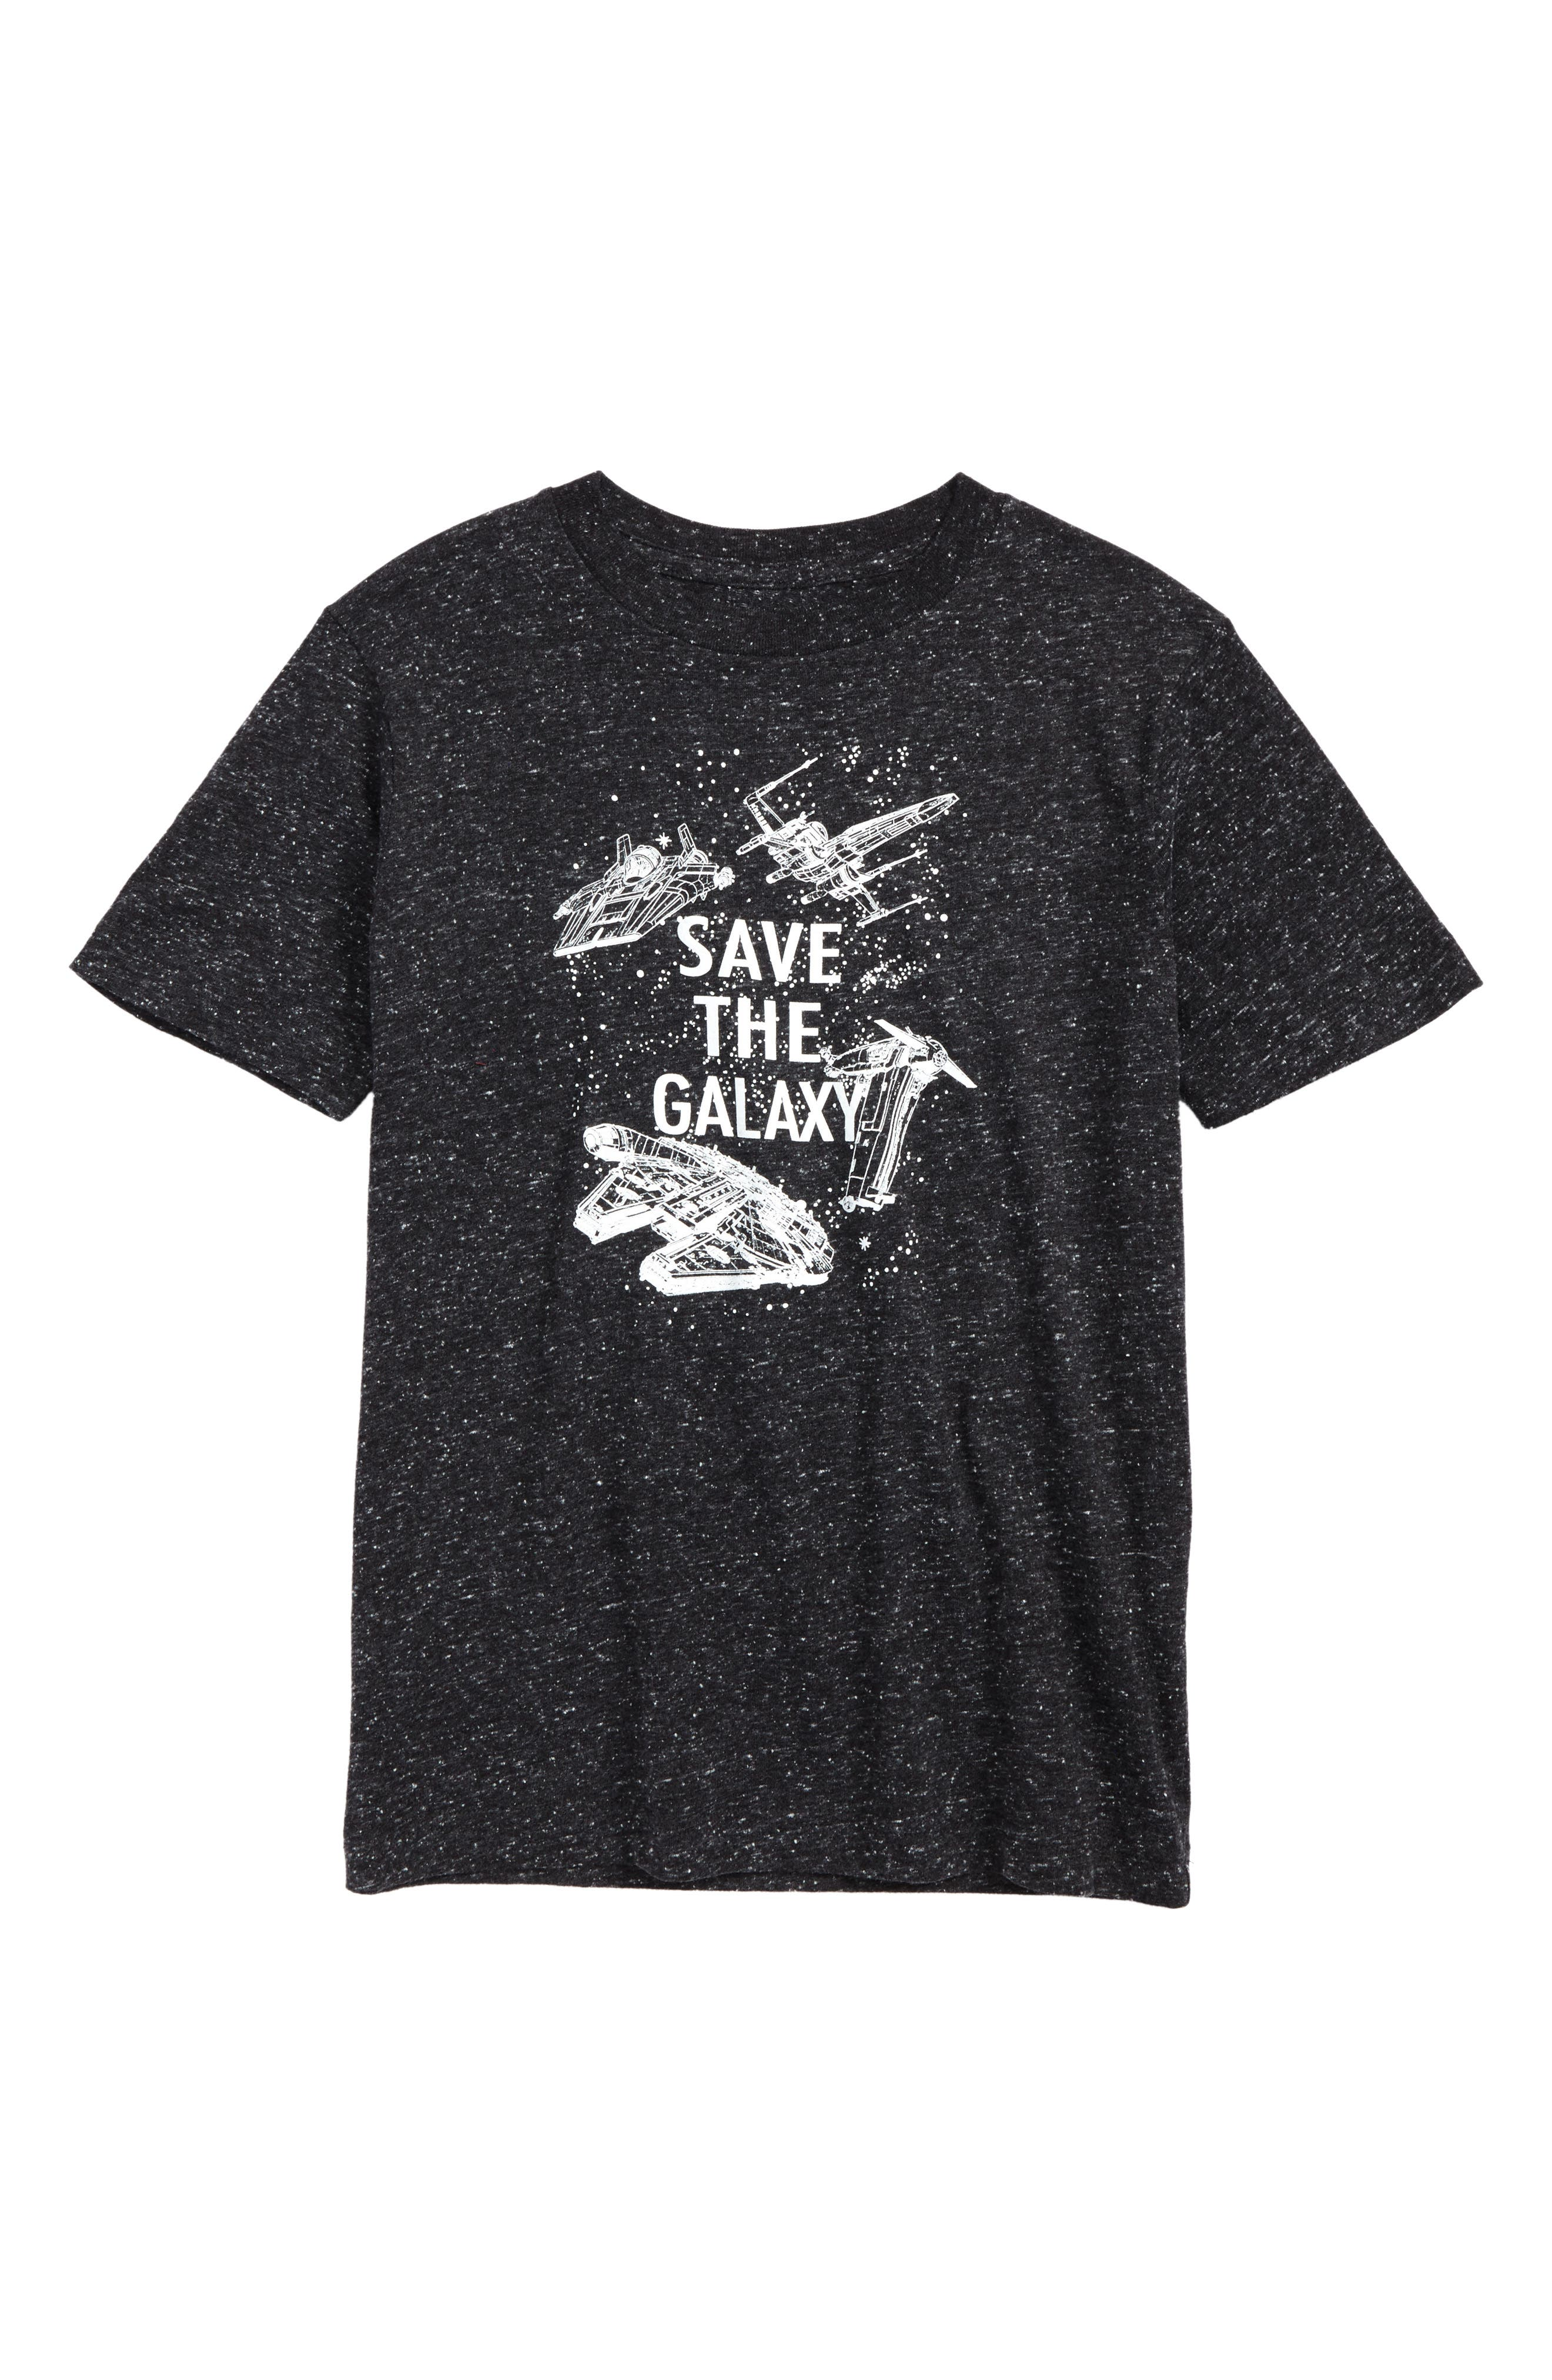 Star Wars - Save the Galaxy Glow in the Dark T-Shirt,                         Main,                         color, Black